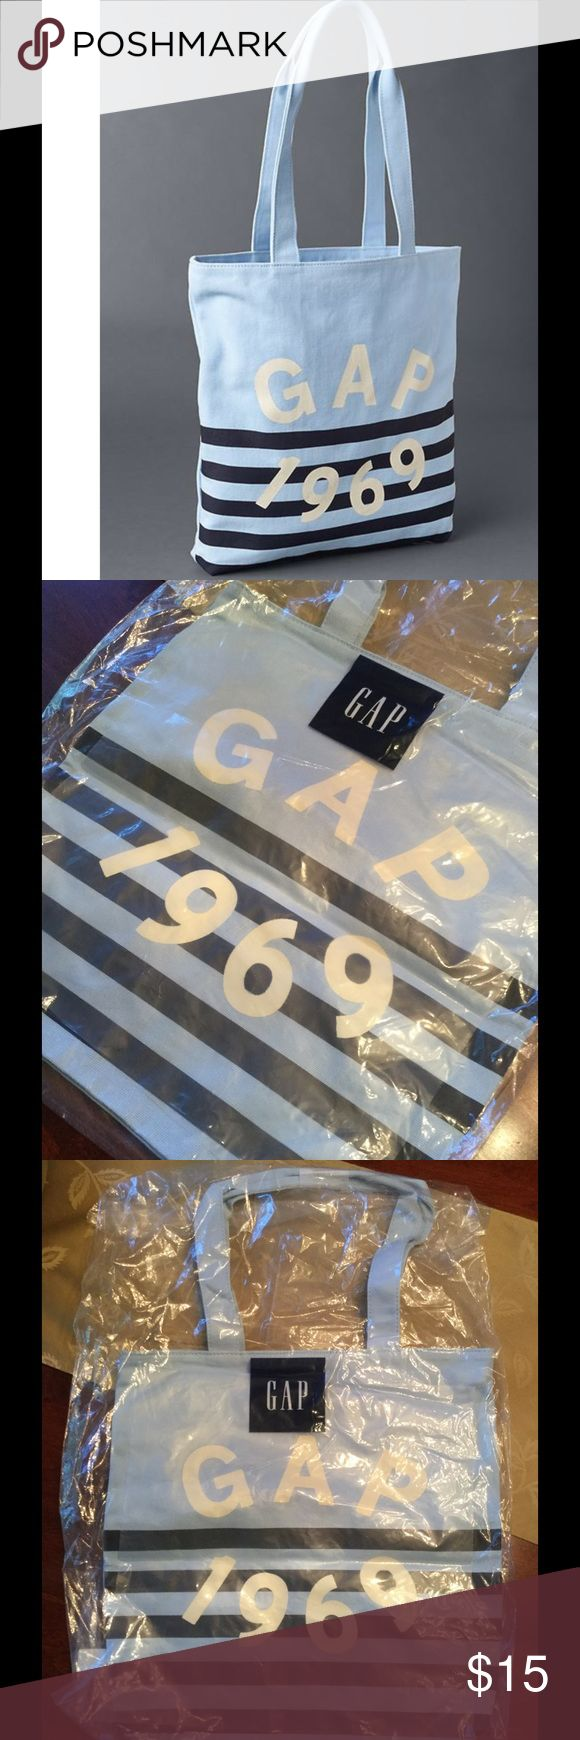 "🆕 GAP 1969 Logo Stripe Tote Bag ! 💙 Gap 1969 Logo Stripe Tote Bag ! "" Cerulean Blue "" ! 100% cotton ! In package ! I have one and LOVE it ! 2 straps, each 24 inch in length ! Measures about 16"" length 15 inch width ! Square bottom about 3 inches ! 5 ⭐️ on GAP ! A must have ! 💙 GAP Bags Totes"